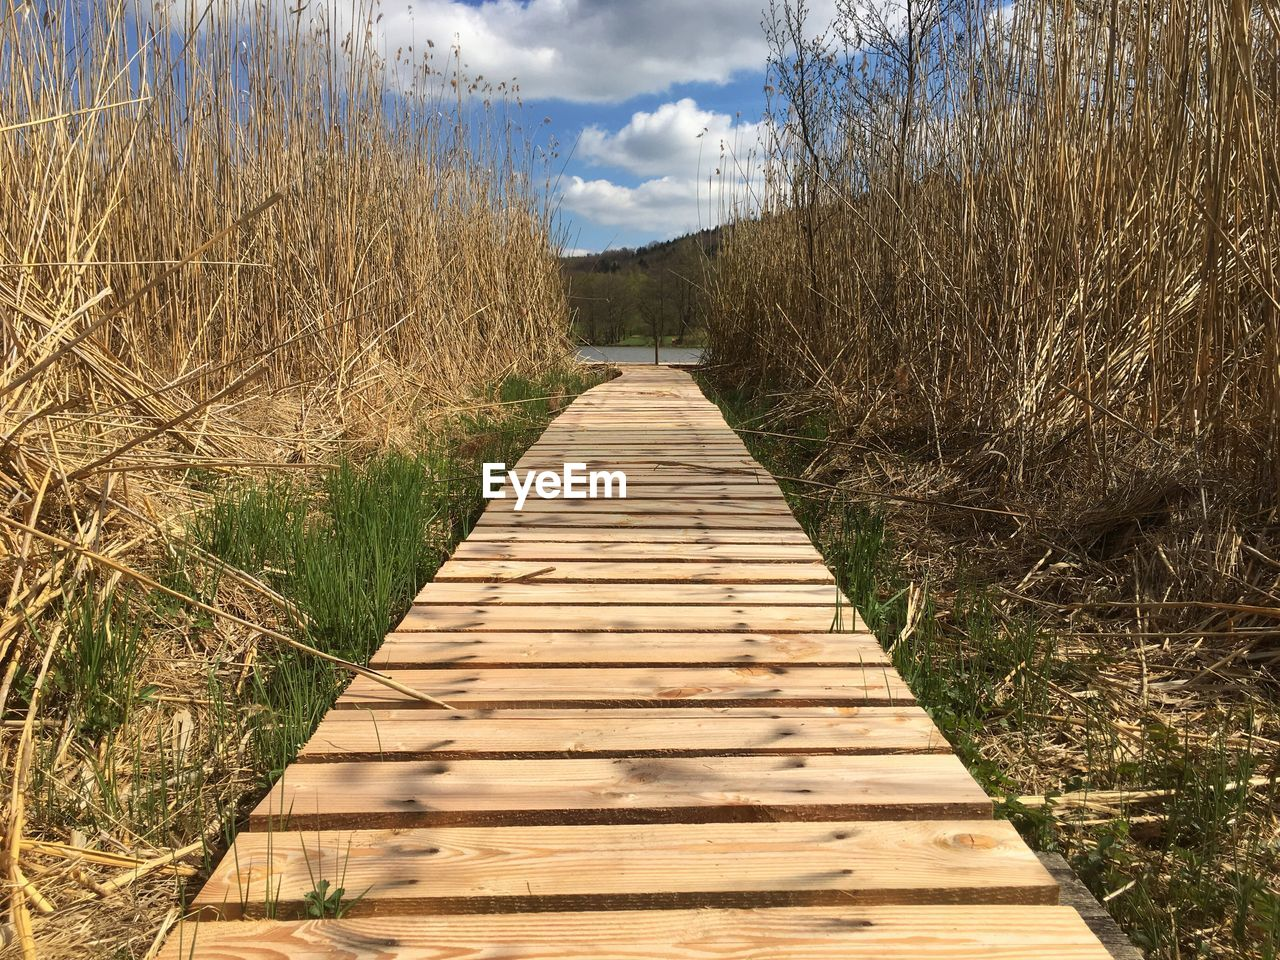 plant, direction, the way forward, nature, wood - material, tree, sky, no people, day, tranquility, diminishing perspective, land, footpath, cloud - sky, boardwalk, outdoors, growth, tranquil scene, grass, sunlight, wood, wood paneling